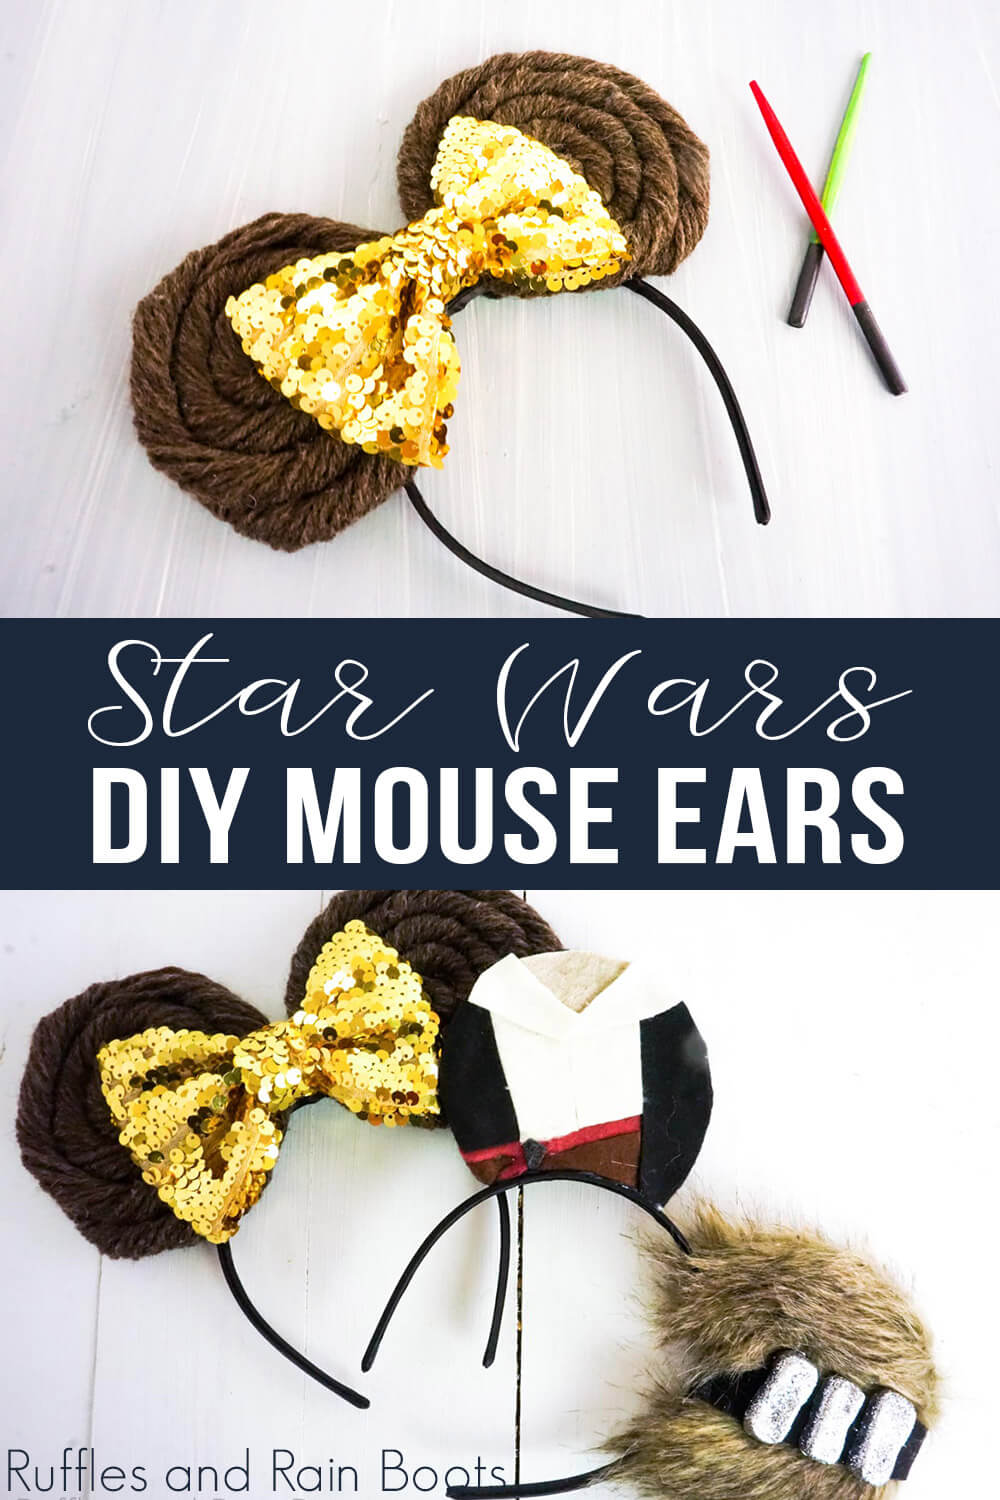 photo collage of star wars mickey ears for kids with text which reads star wars diy mouse ears